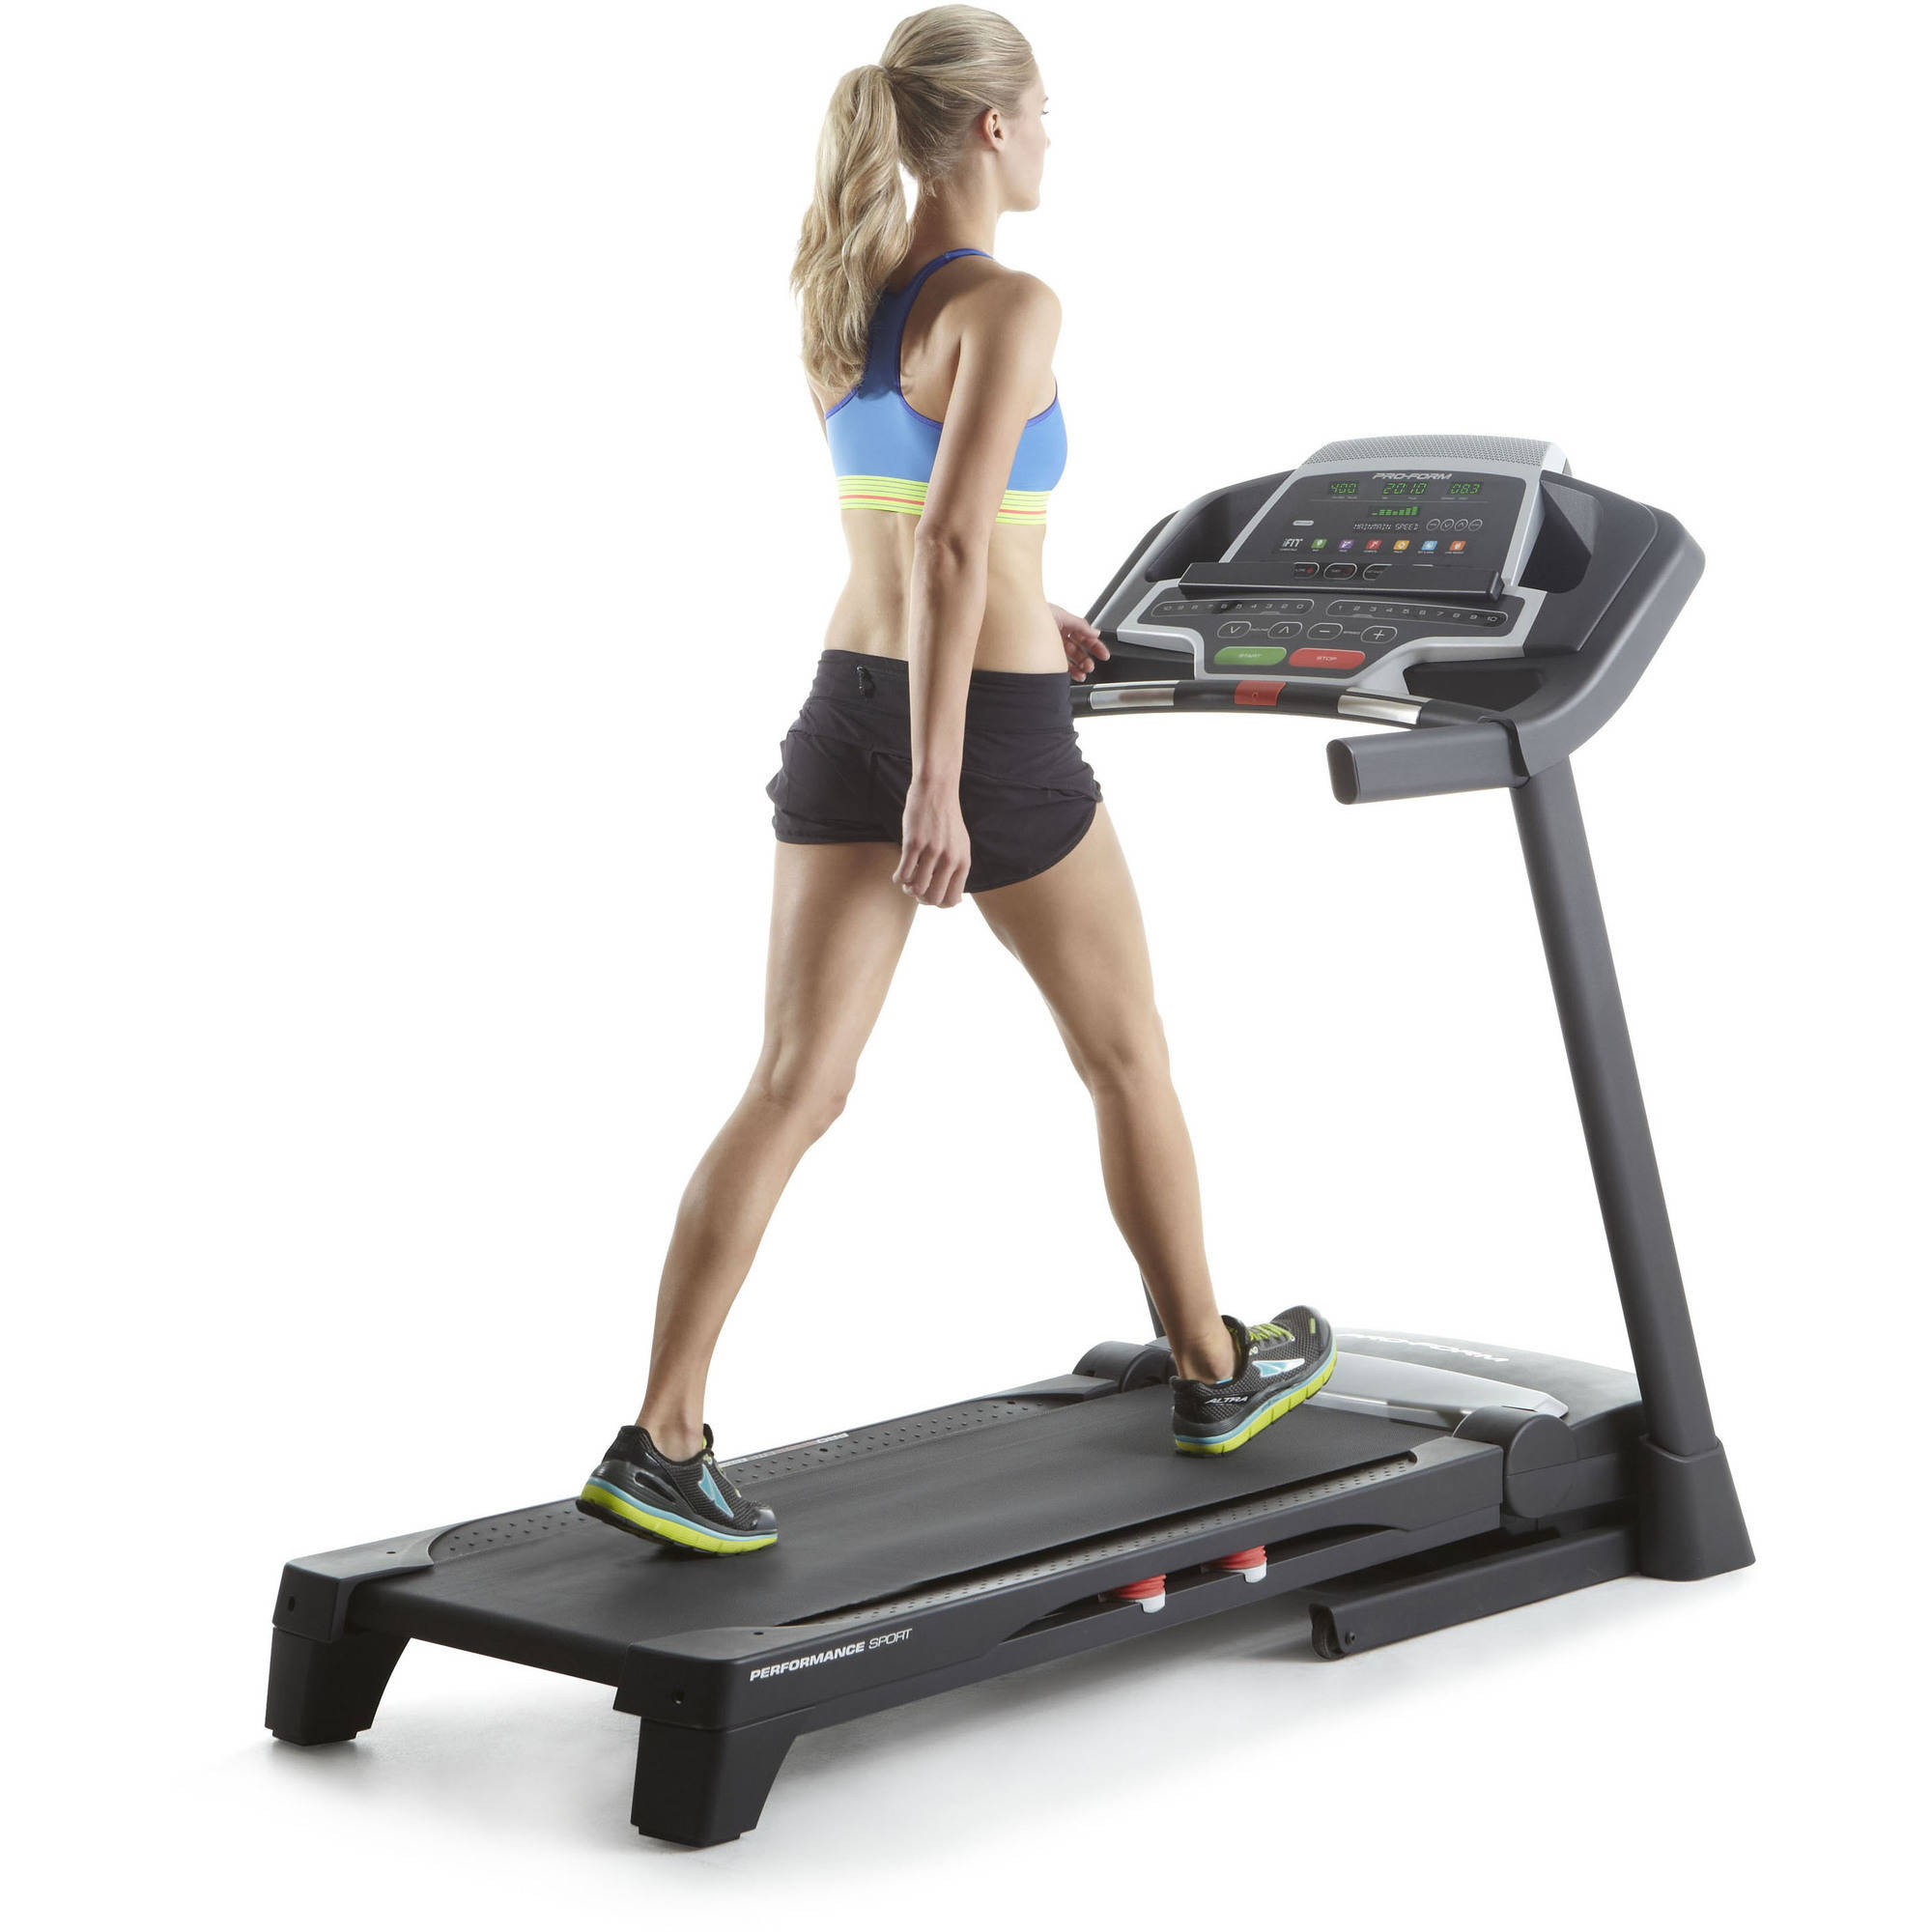 ProForm Performance Sport Folding Treadmill with Power Incline